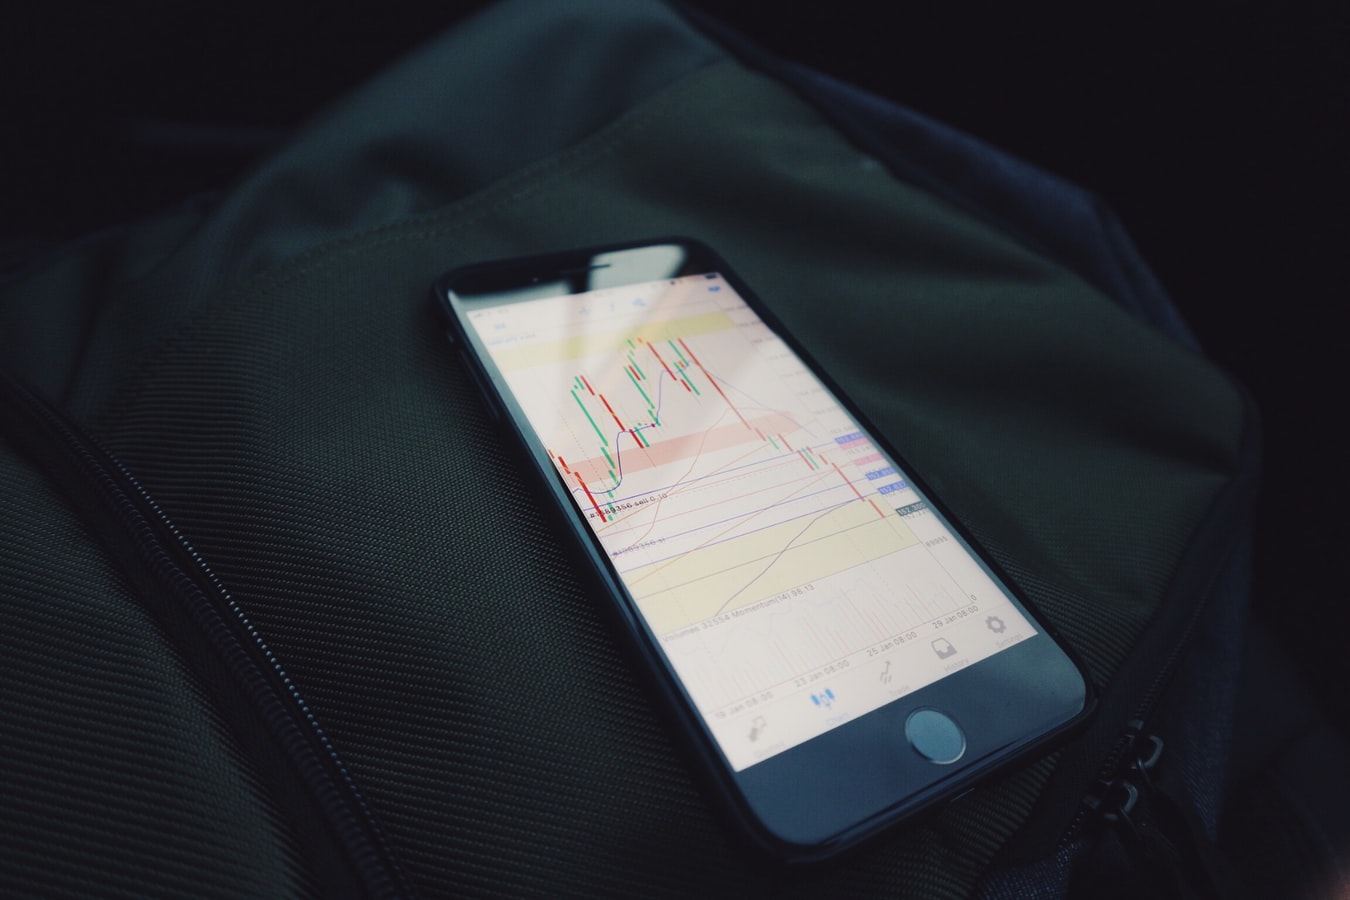 iphone with stock charts on screen and dark backround